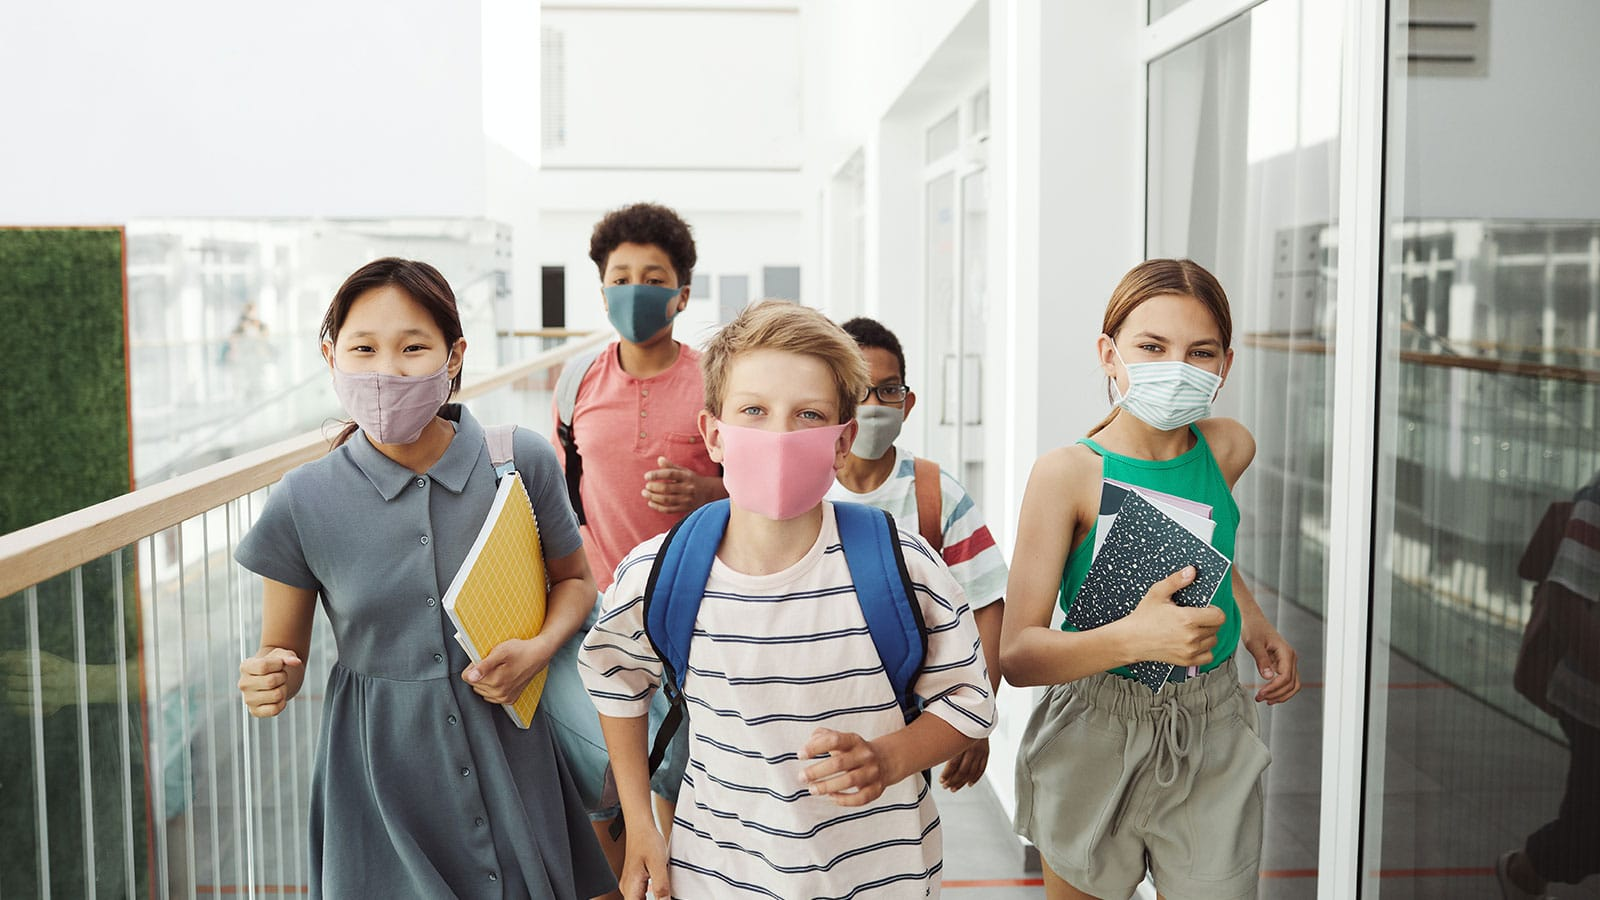 Five young students walking the hallways